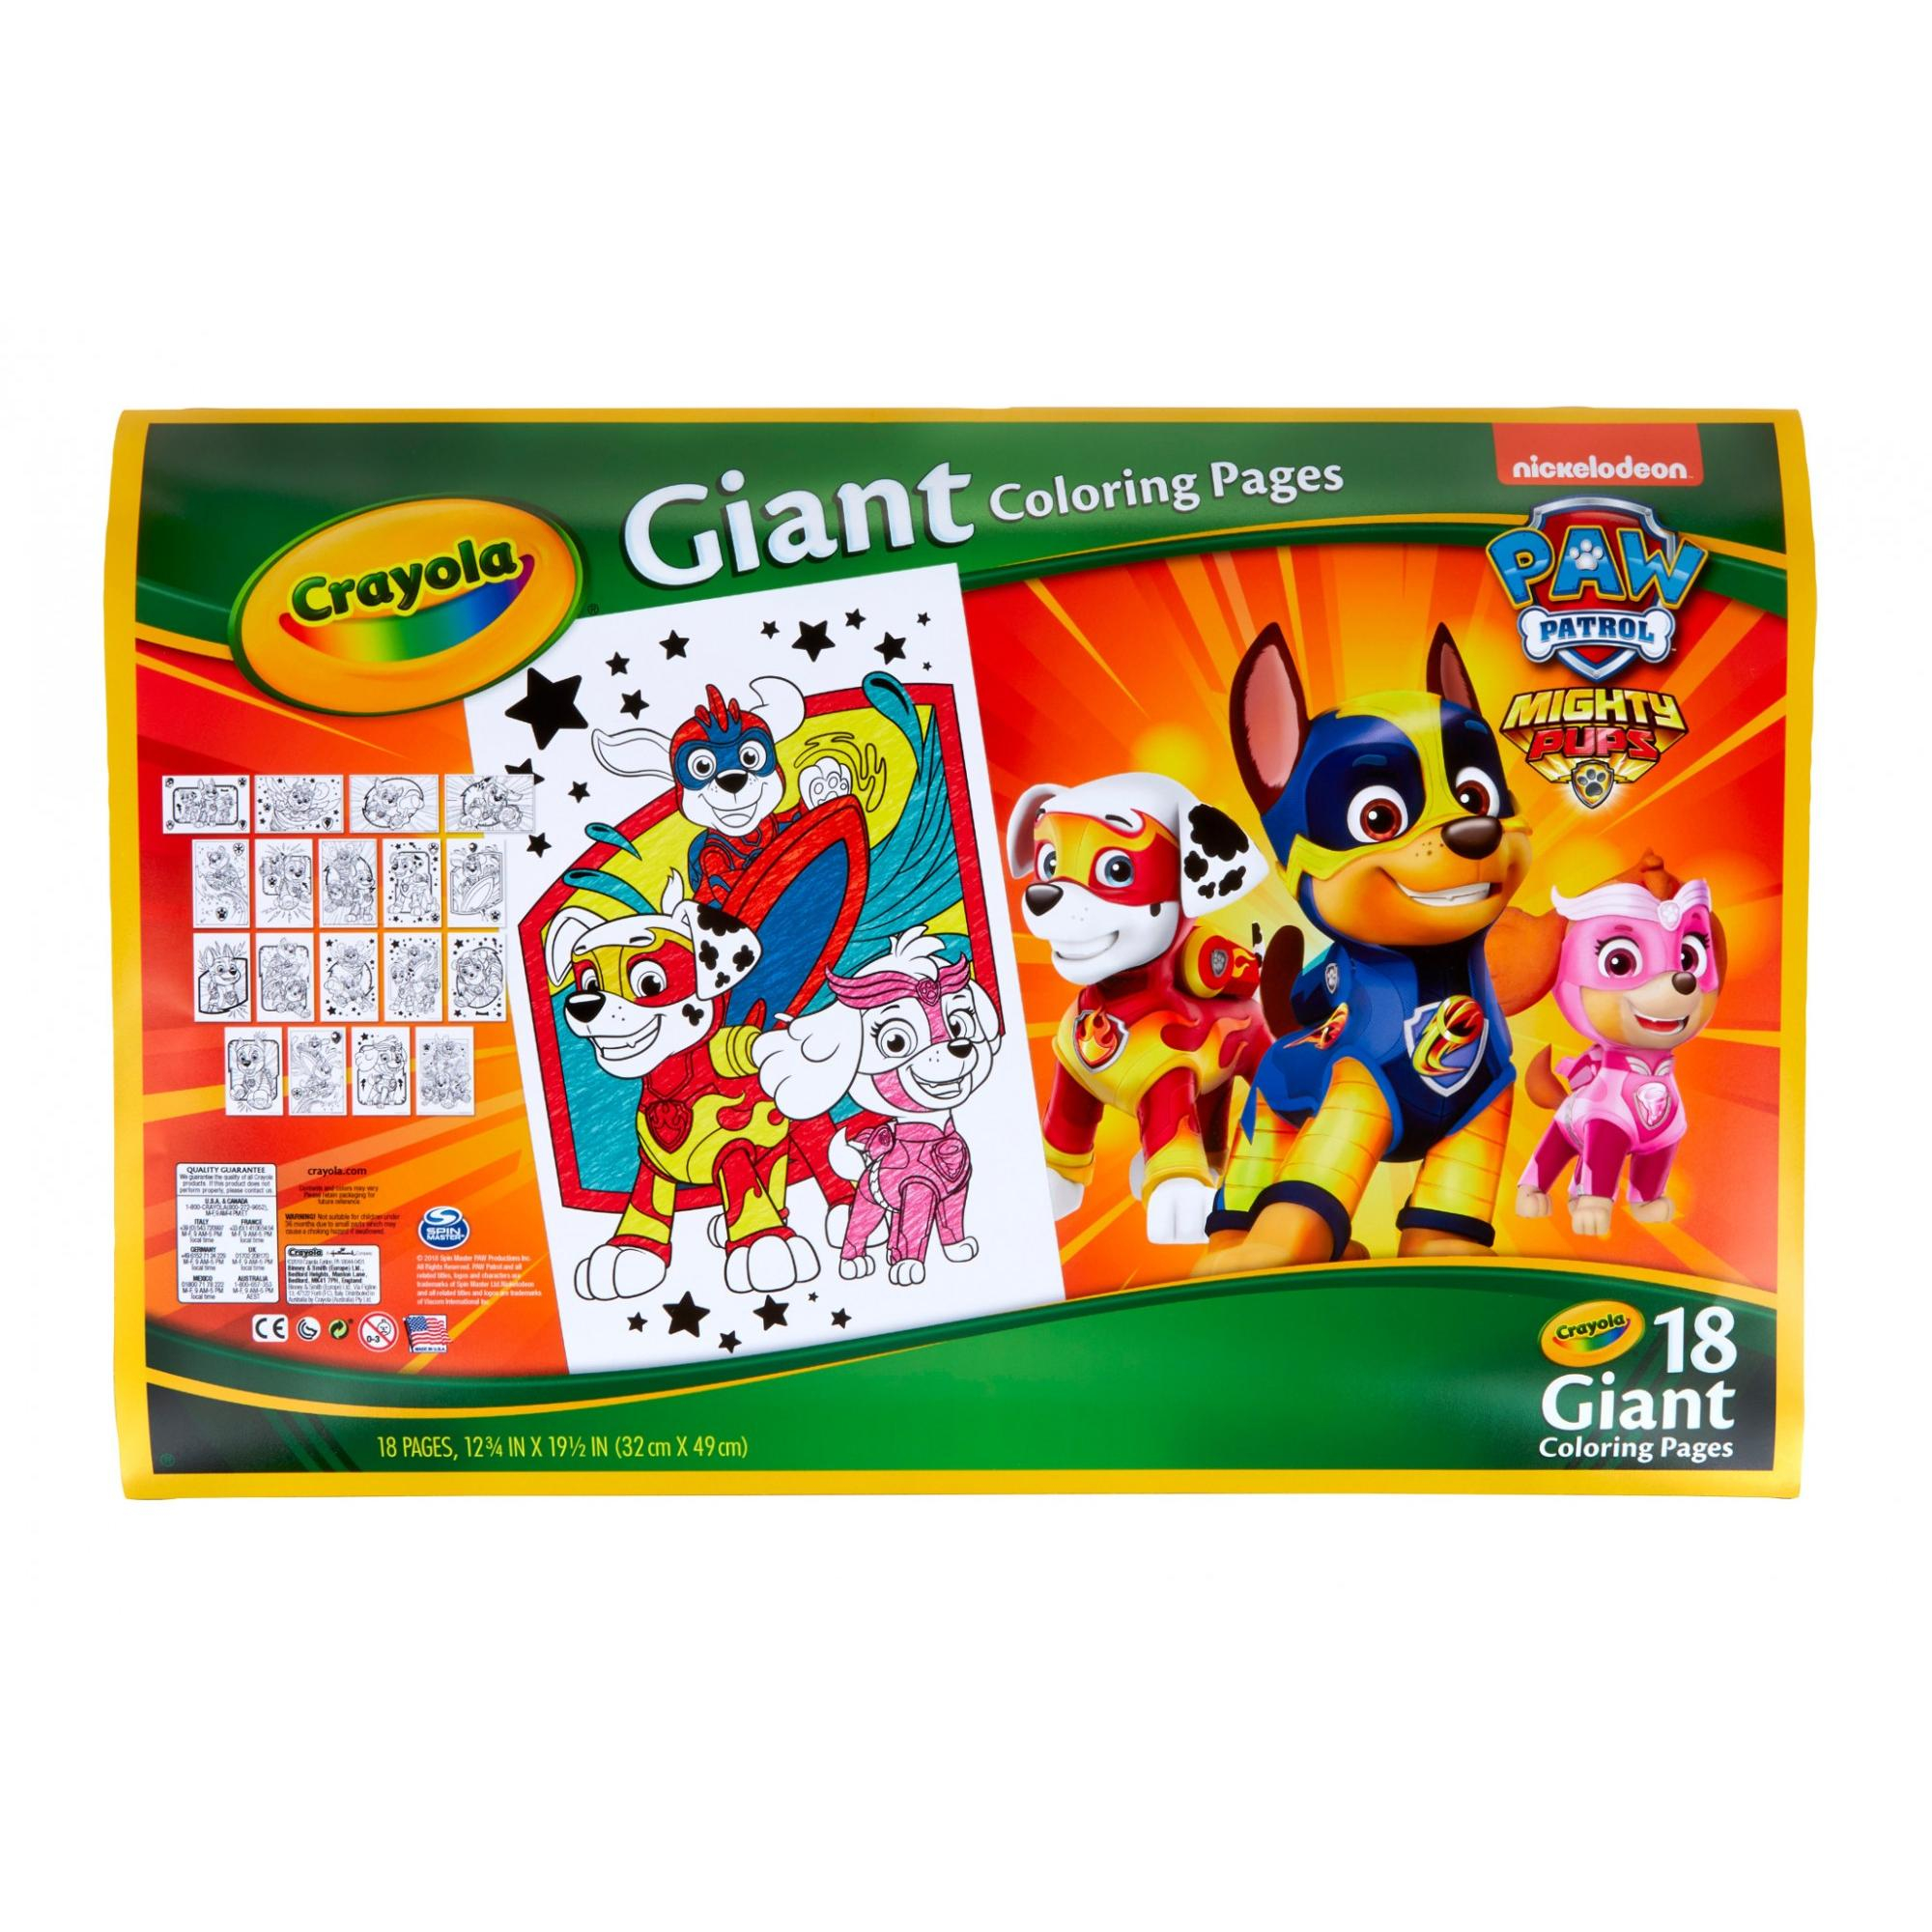 Crayola Giant Coloring Pages Crayola Paw Patrol Giant Coloring Pages Gift For Kids Age 3 4 5